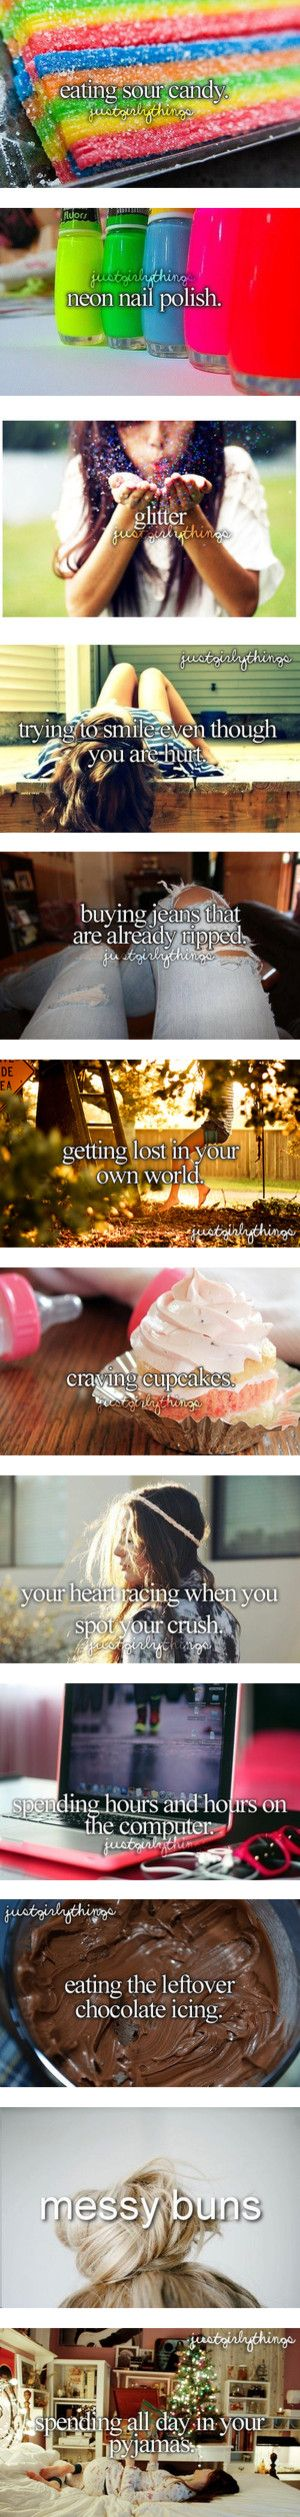 ❤ just girly things